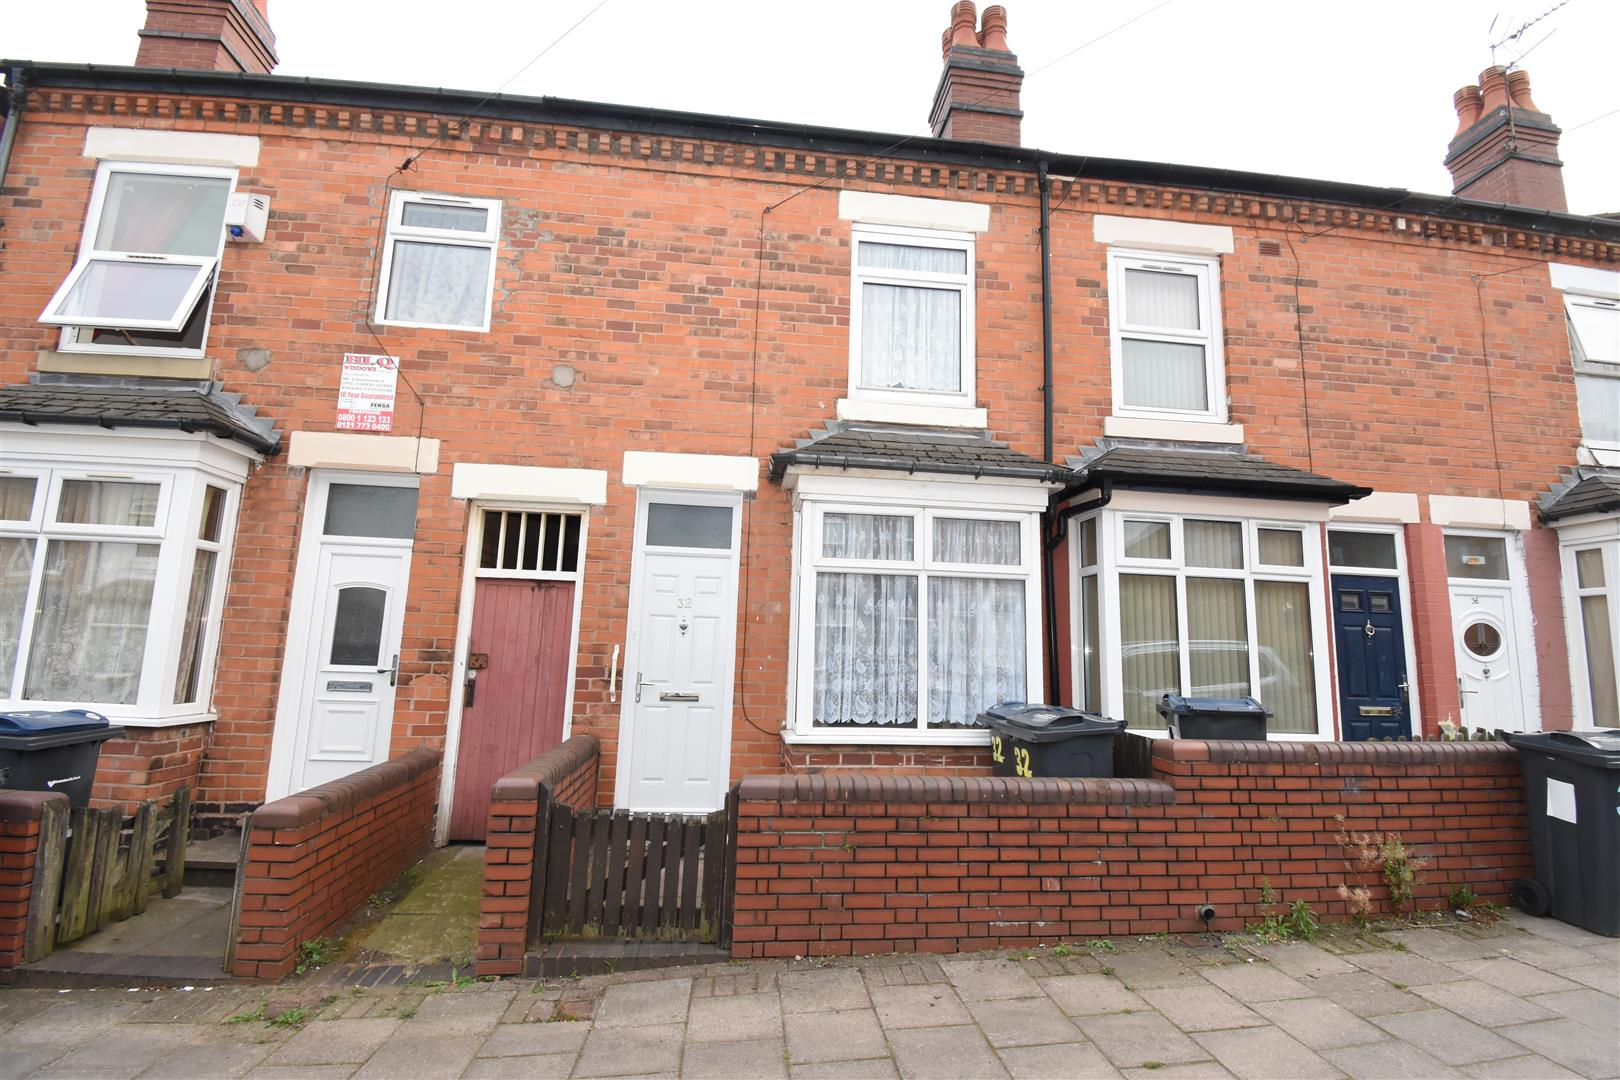 2 bed house for sale in Teall Road, Alum Rock, Birmingham, B8